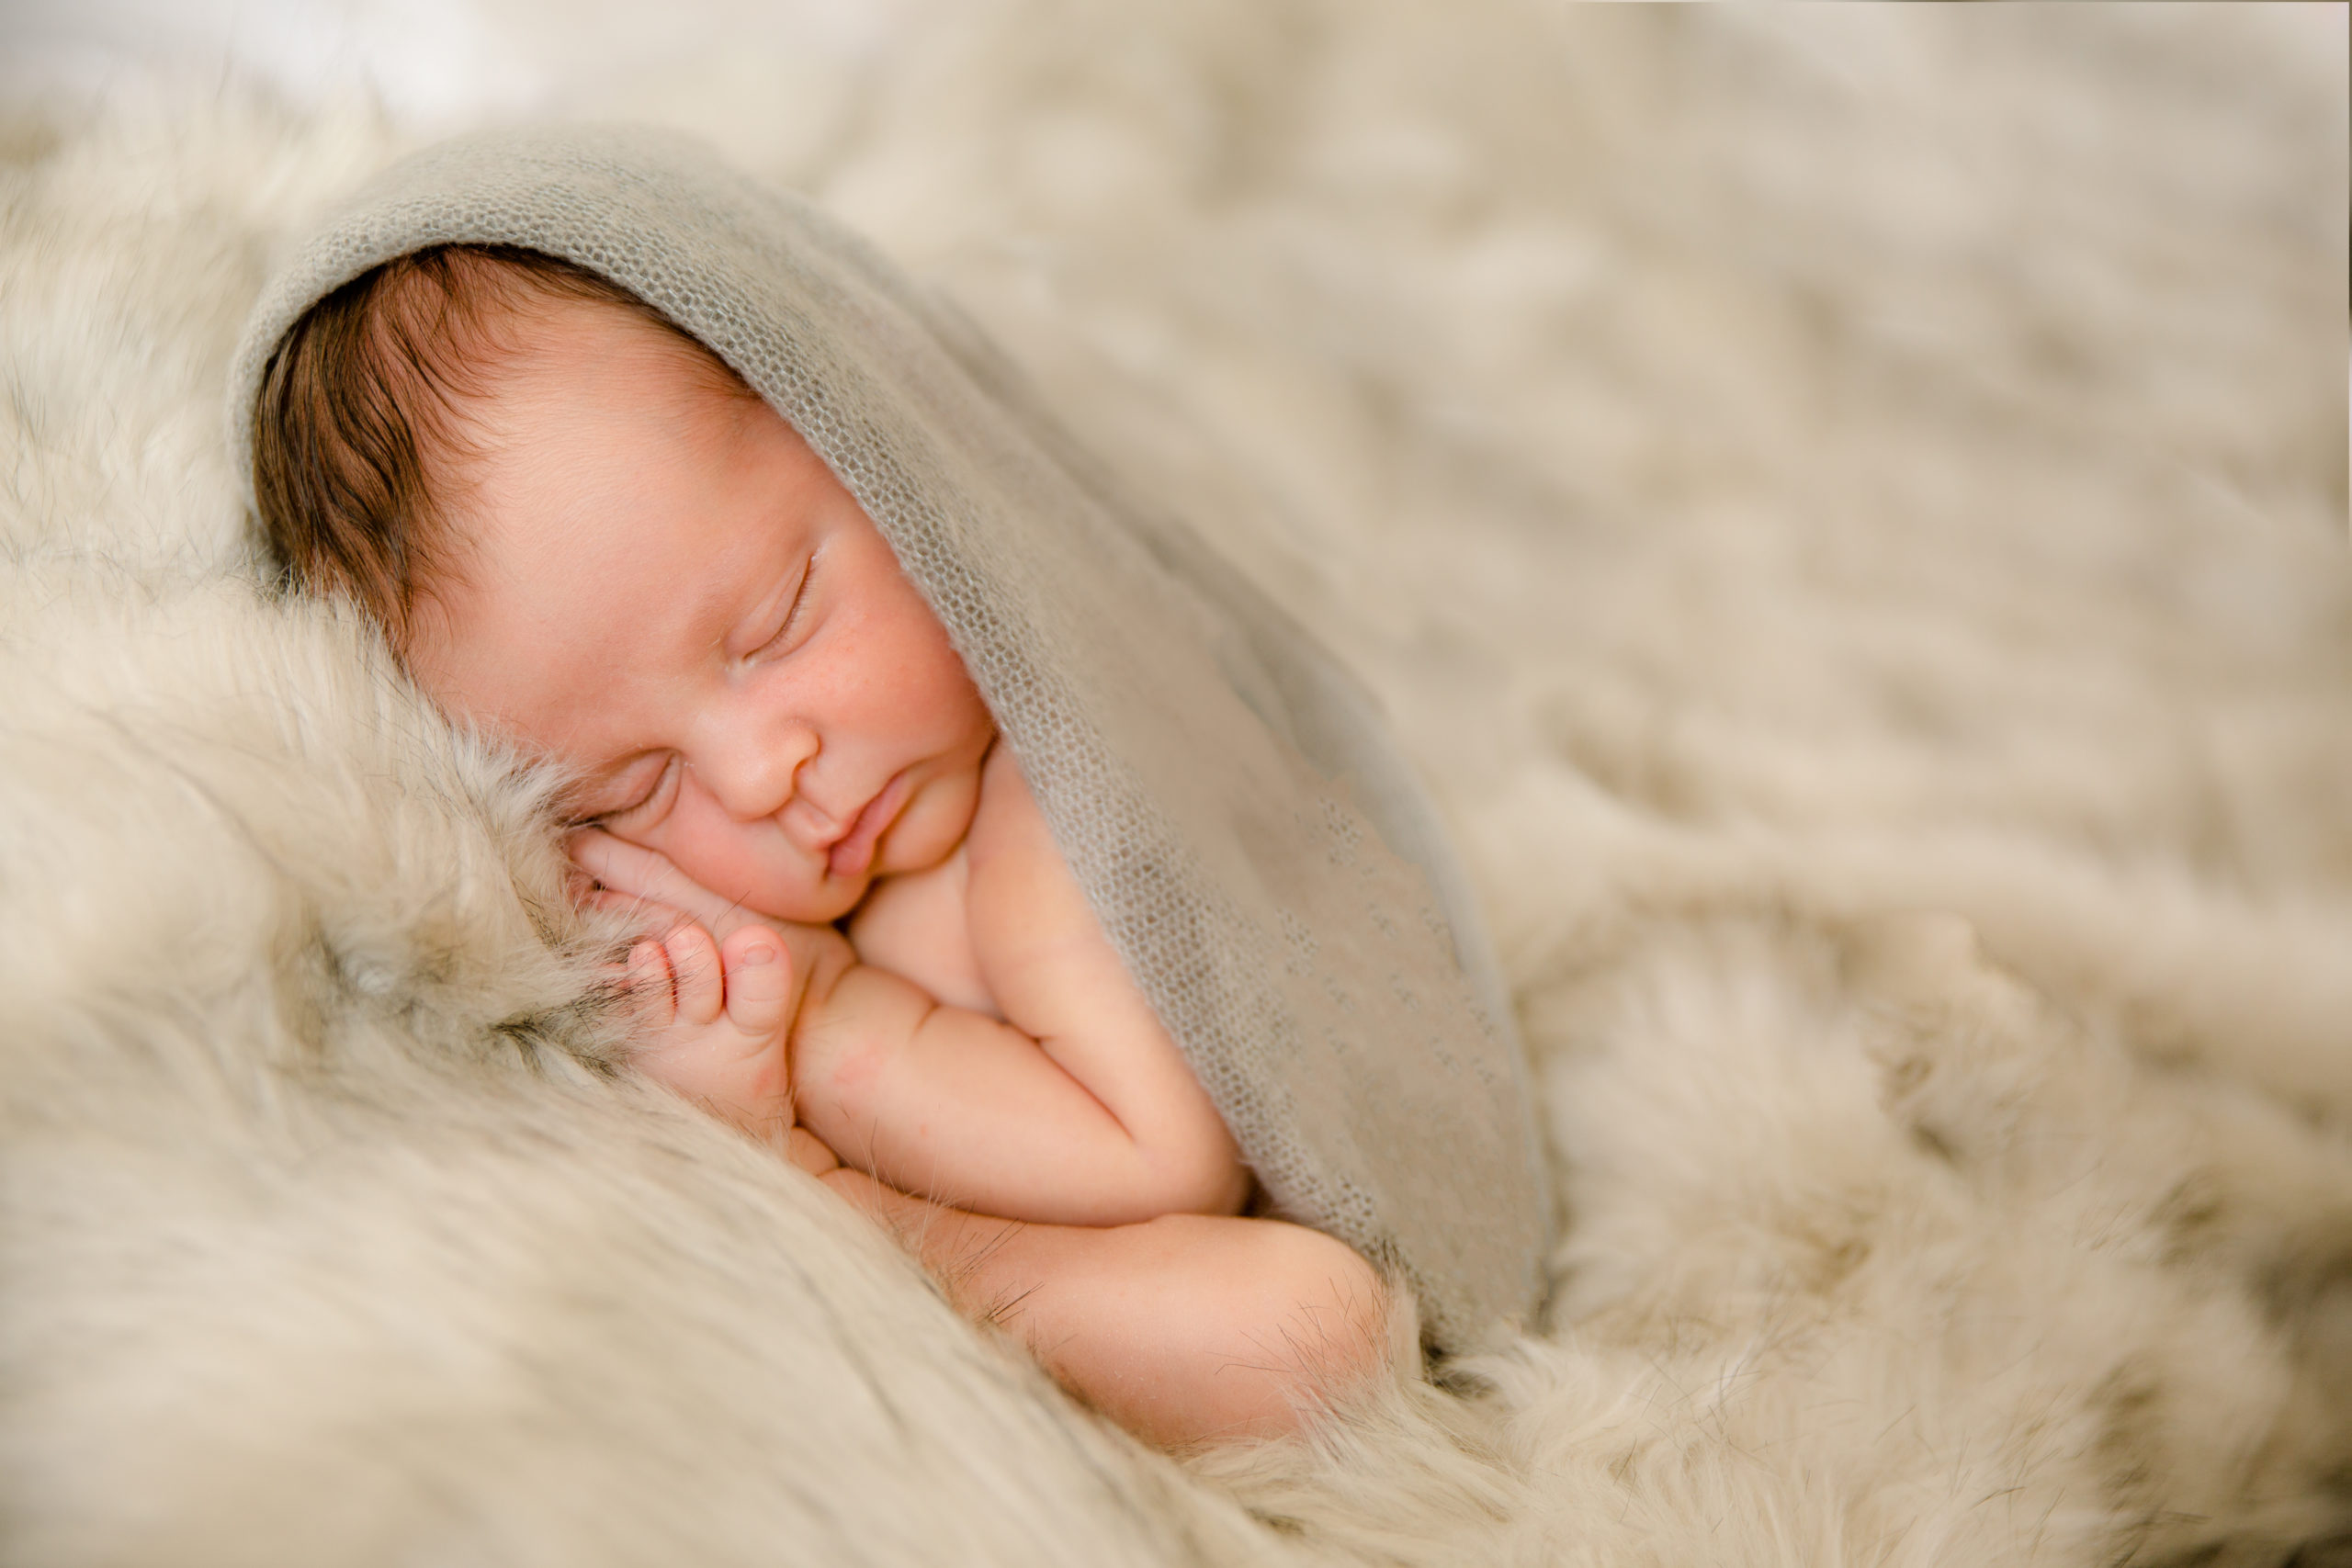 Newborn baby photography taco pose wrapped in grey blanket studio baby photo session baby boy first baby photo newborn photo studio in south west London SW19 Wimbledon